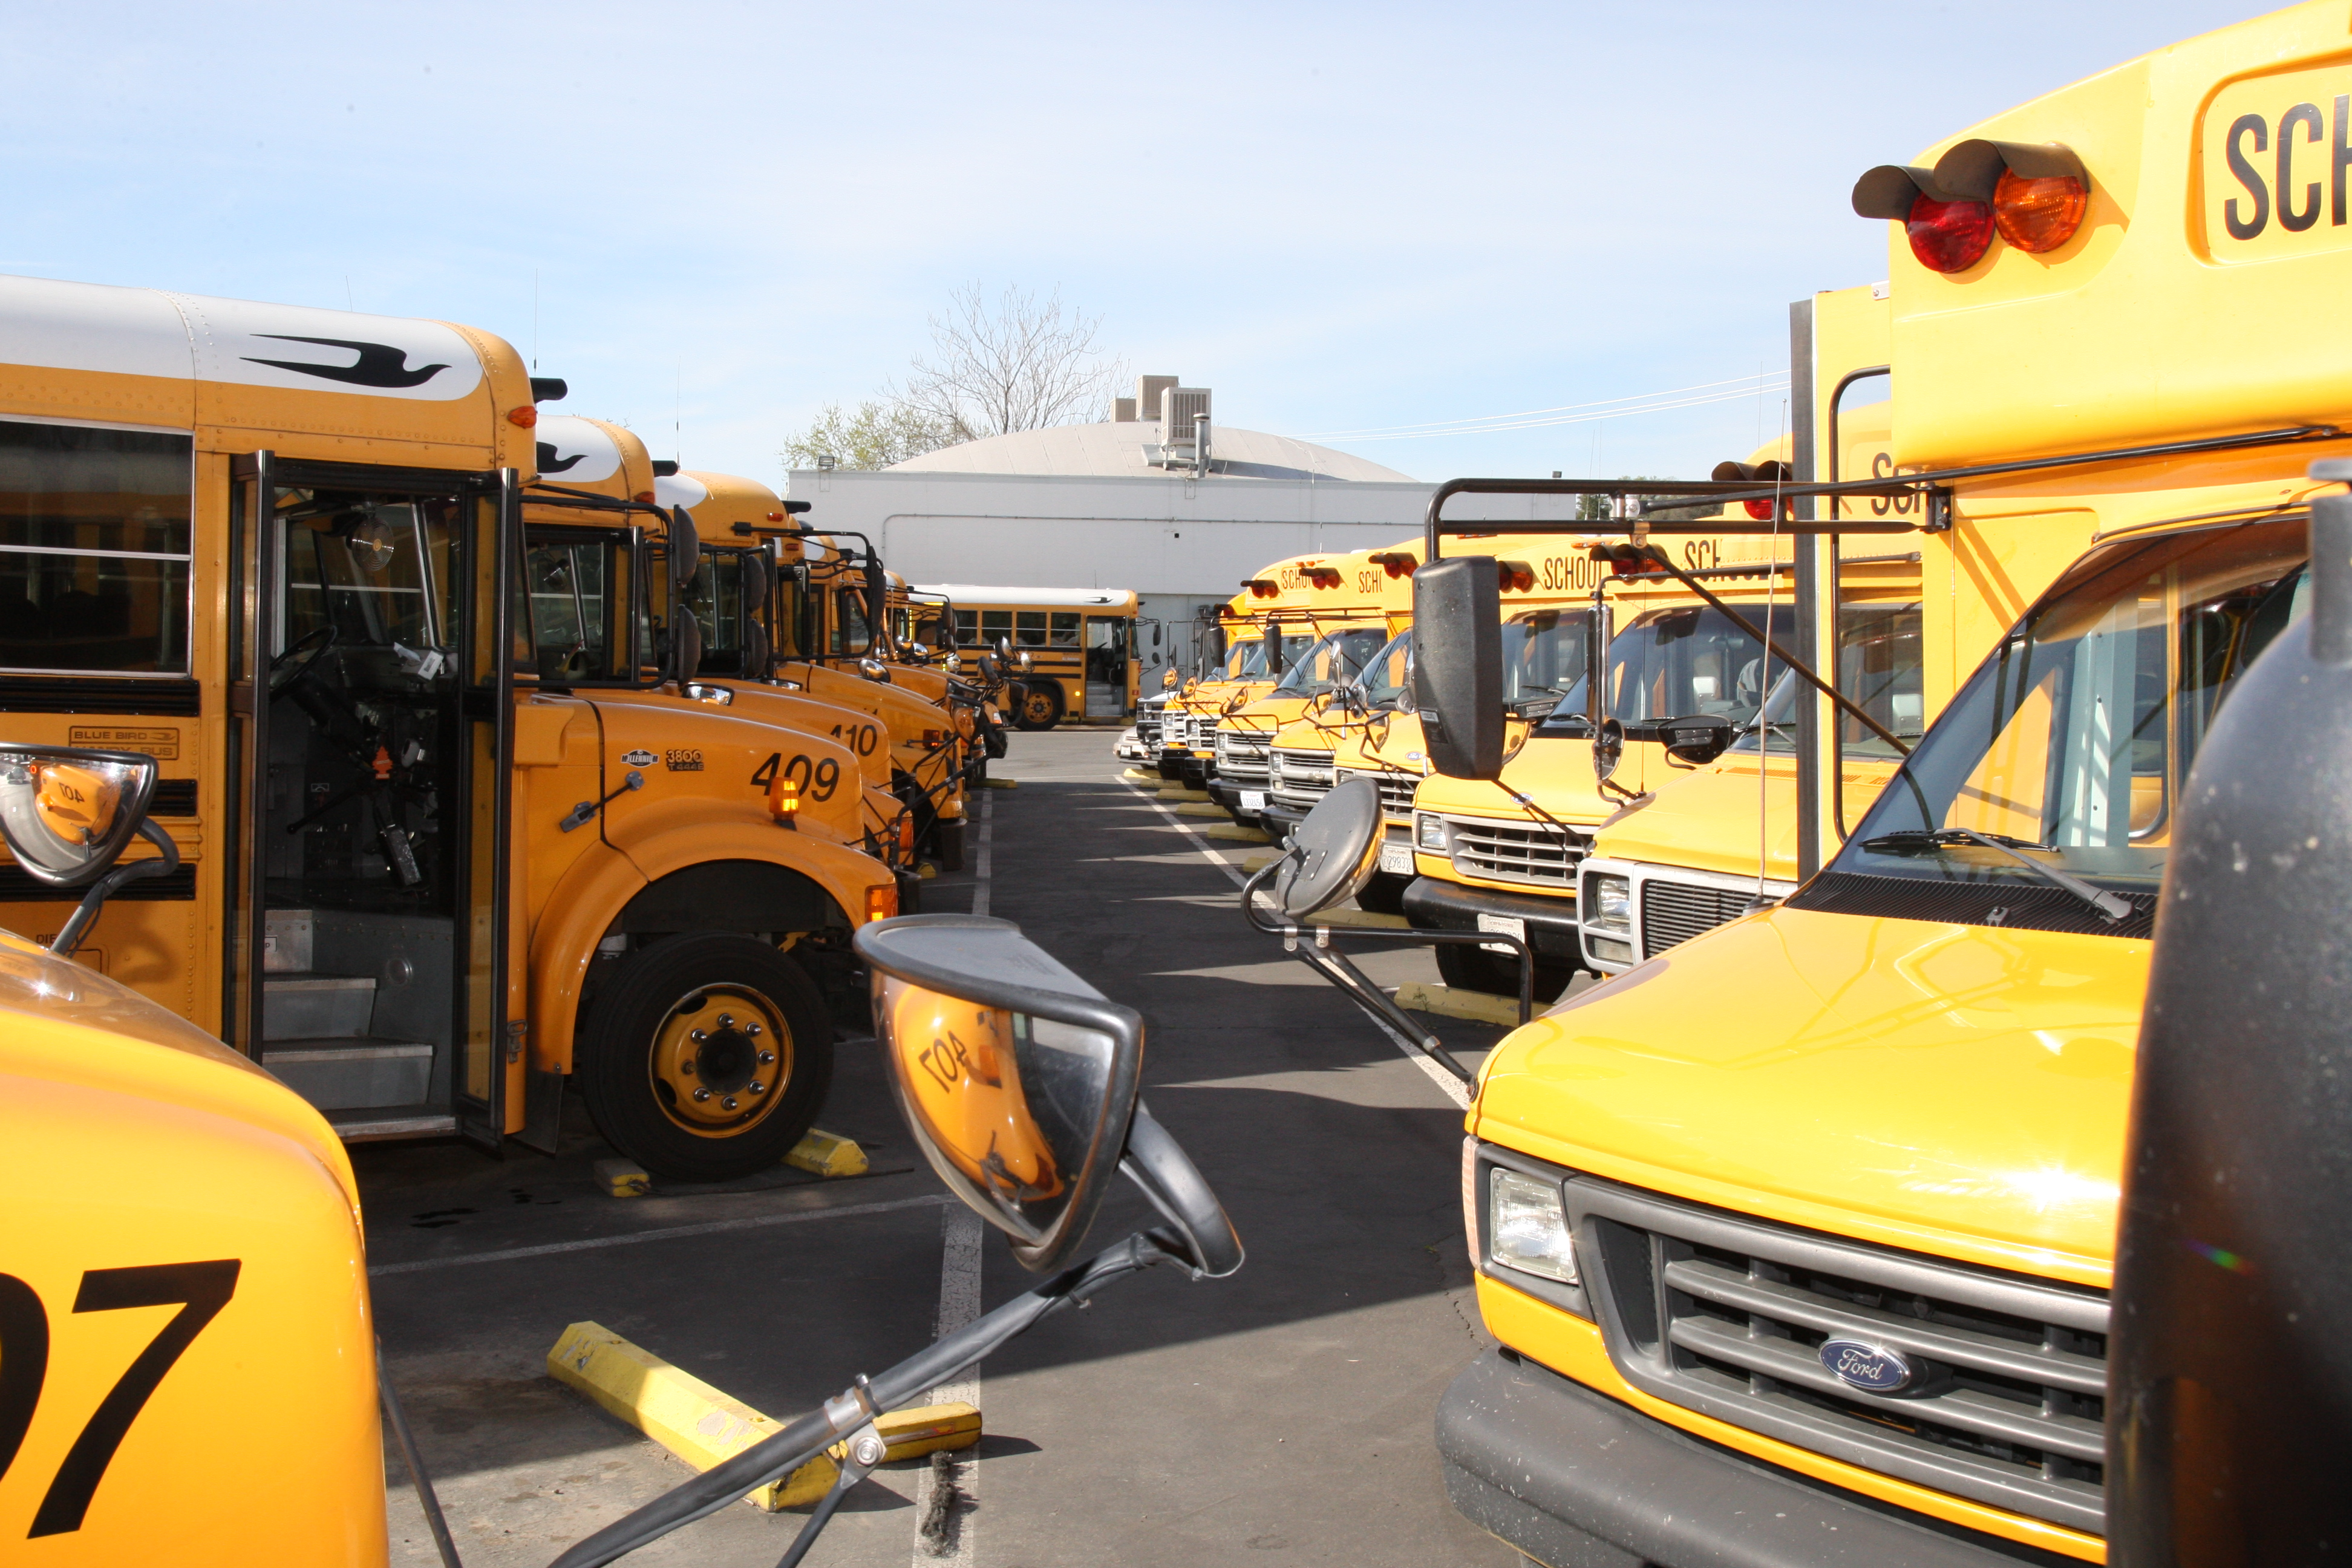 School buses neatly arranged in the parking lot.